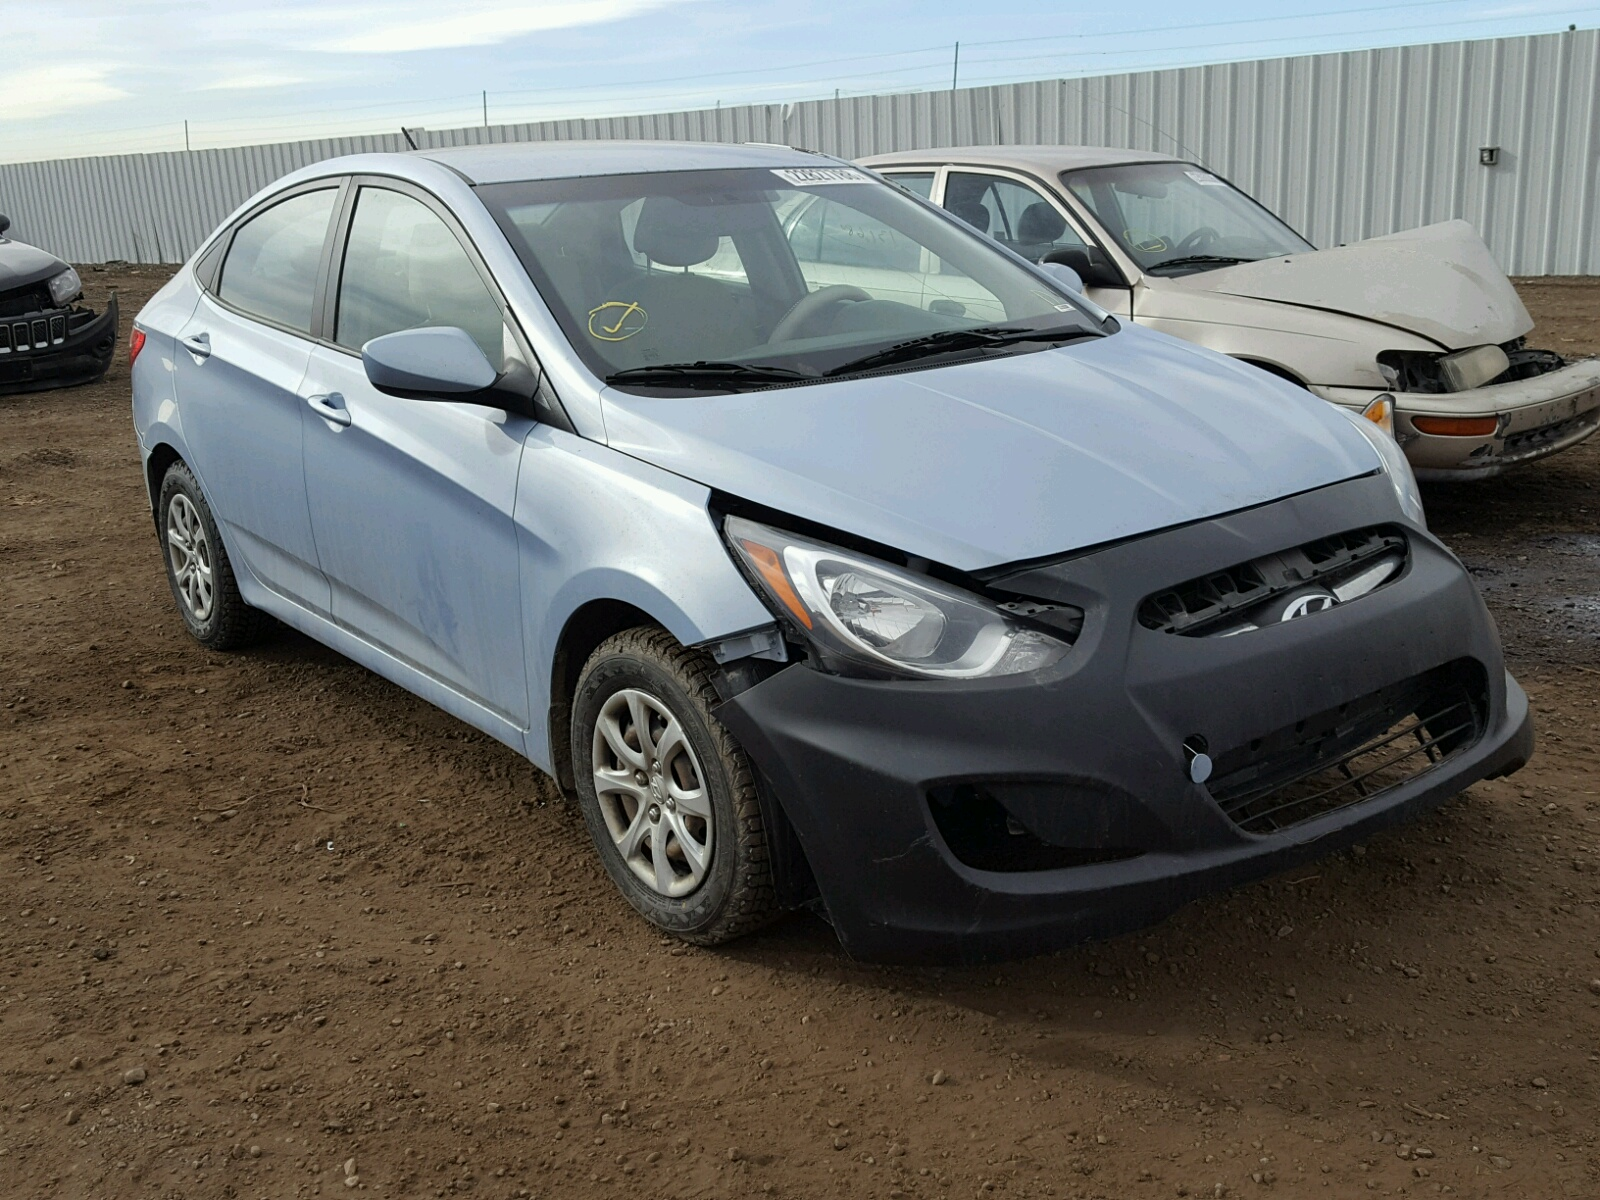 en in sonata on copart silver of greer hyundai gls title auctions sc cert salvage auto lot online sale carfinder se